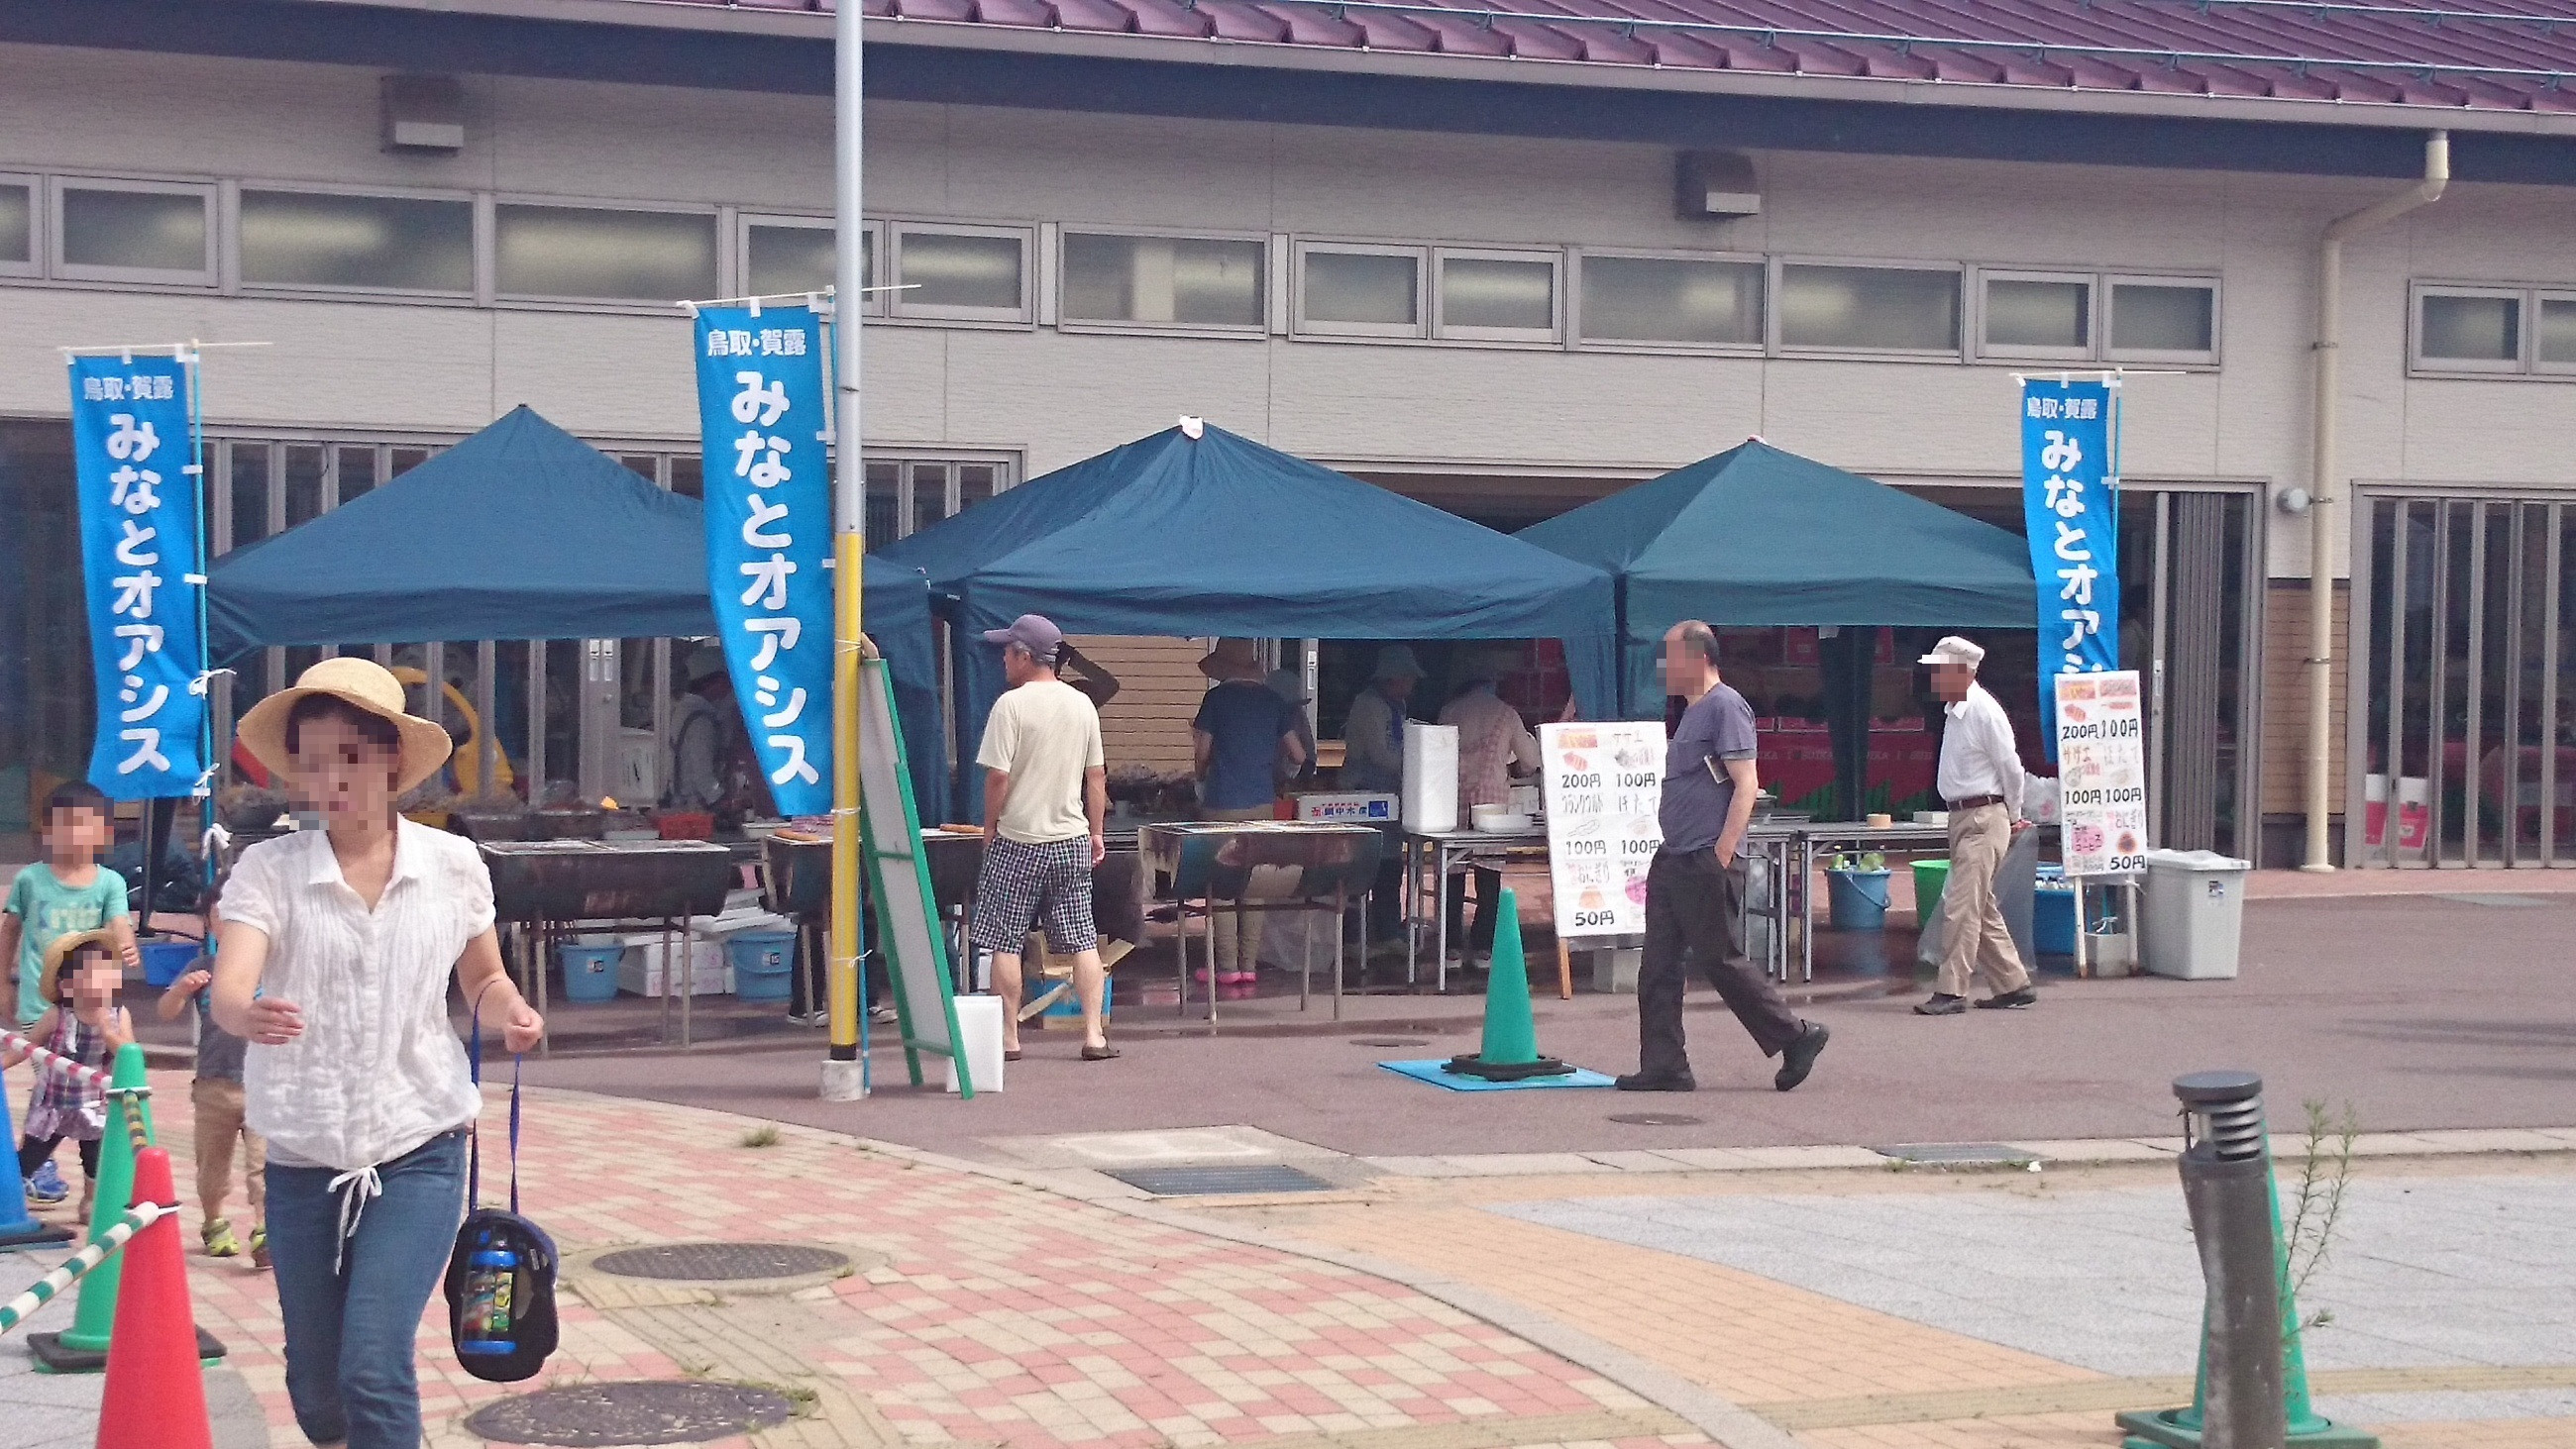 20140721_093547_Android.jpg